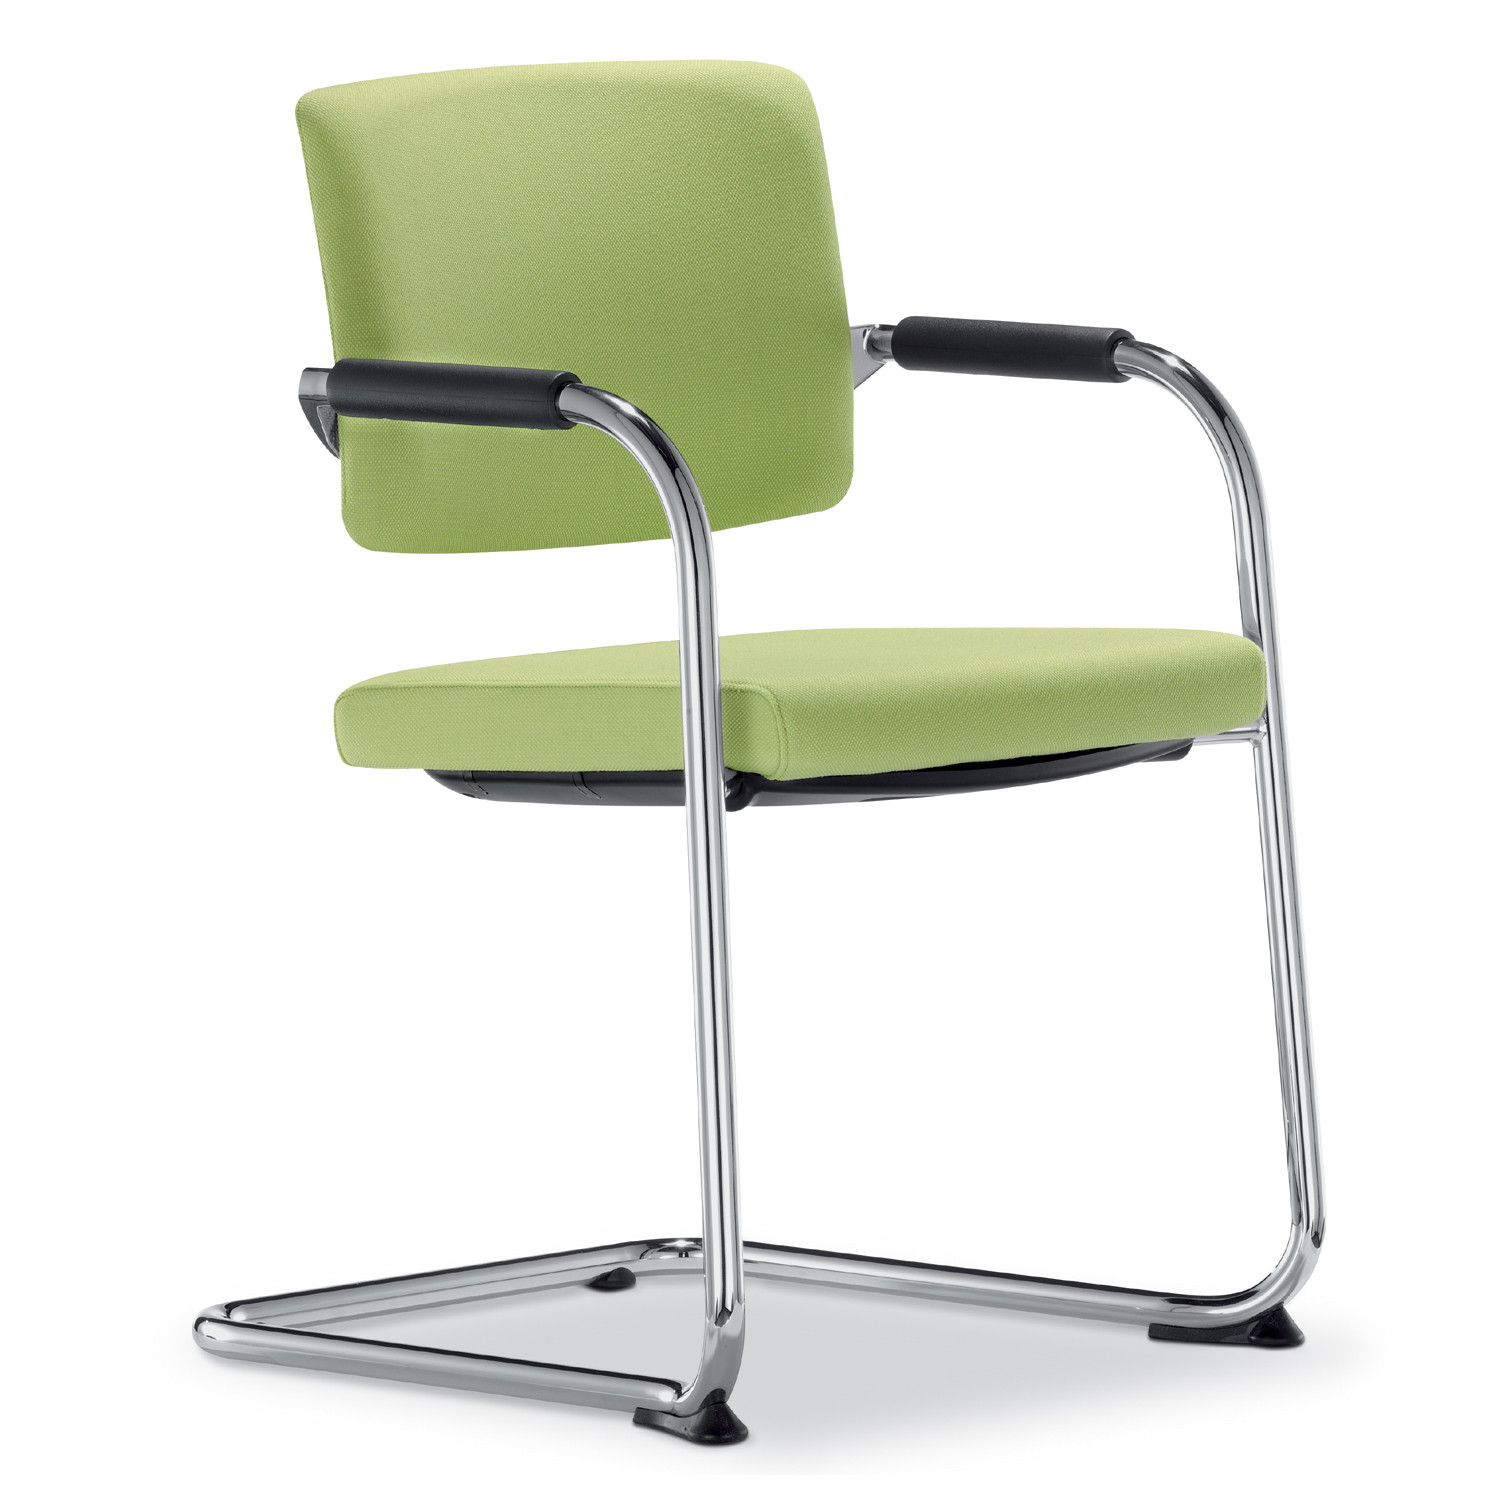 Teo 2 Catilever Chair